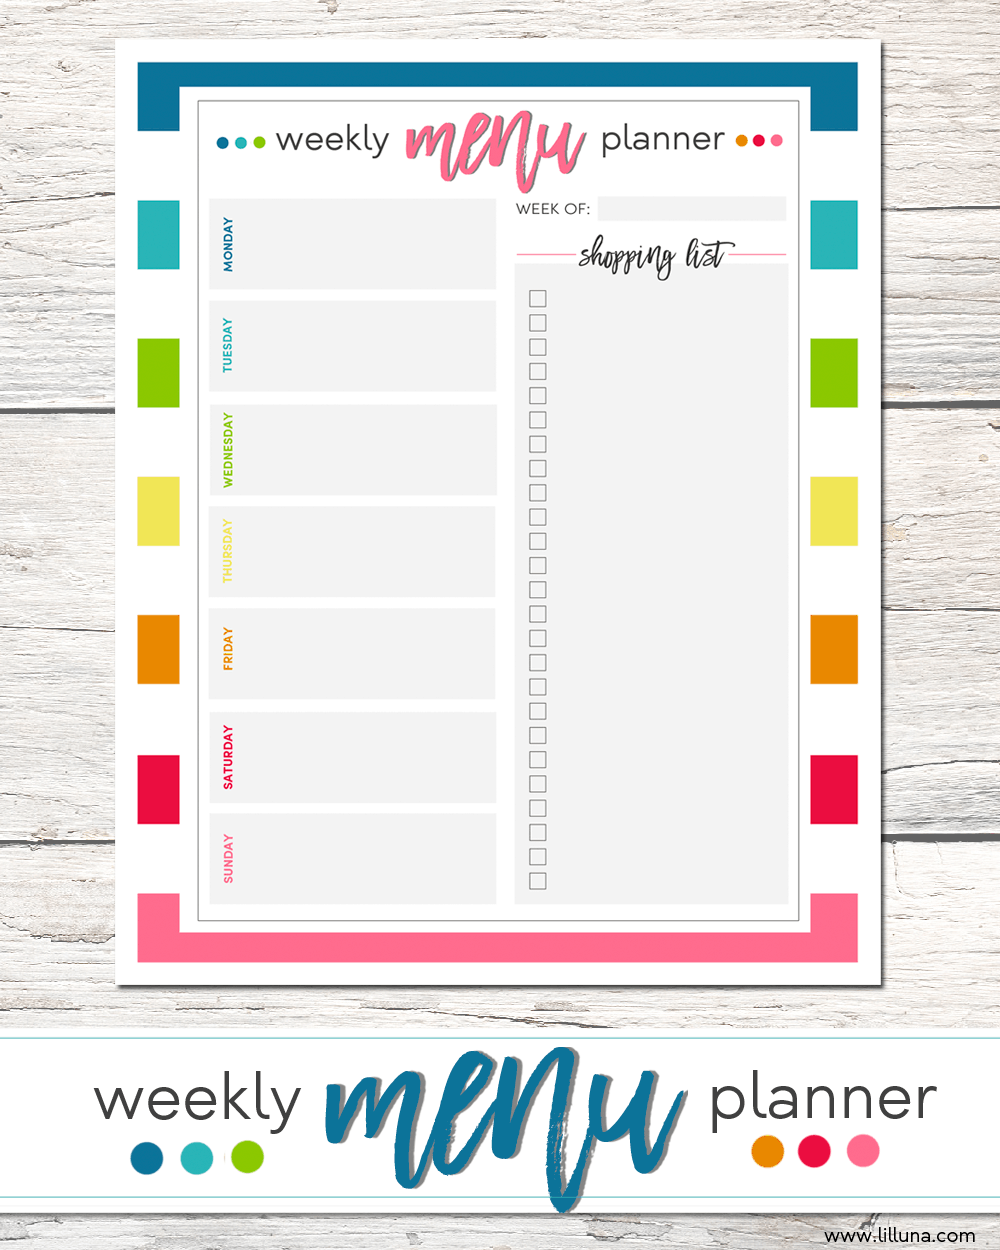 FREE Weekly Menu Planner + Shopping List